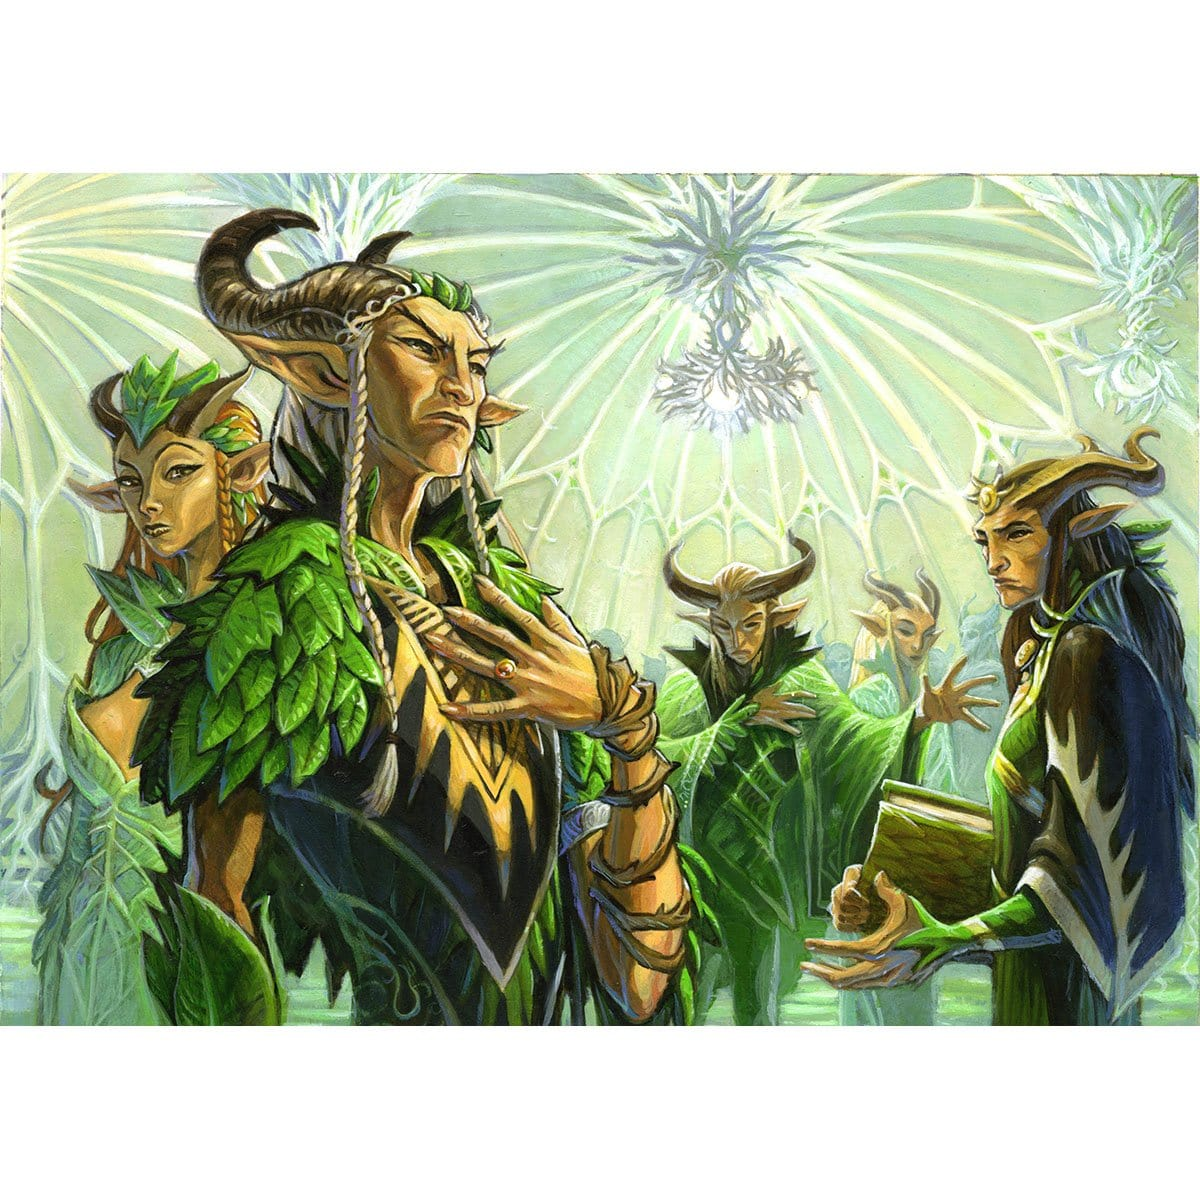 Elvish Promenade Print - Print - Original Magic Art - Accessories for Magic the Gathering and other card games